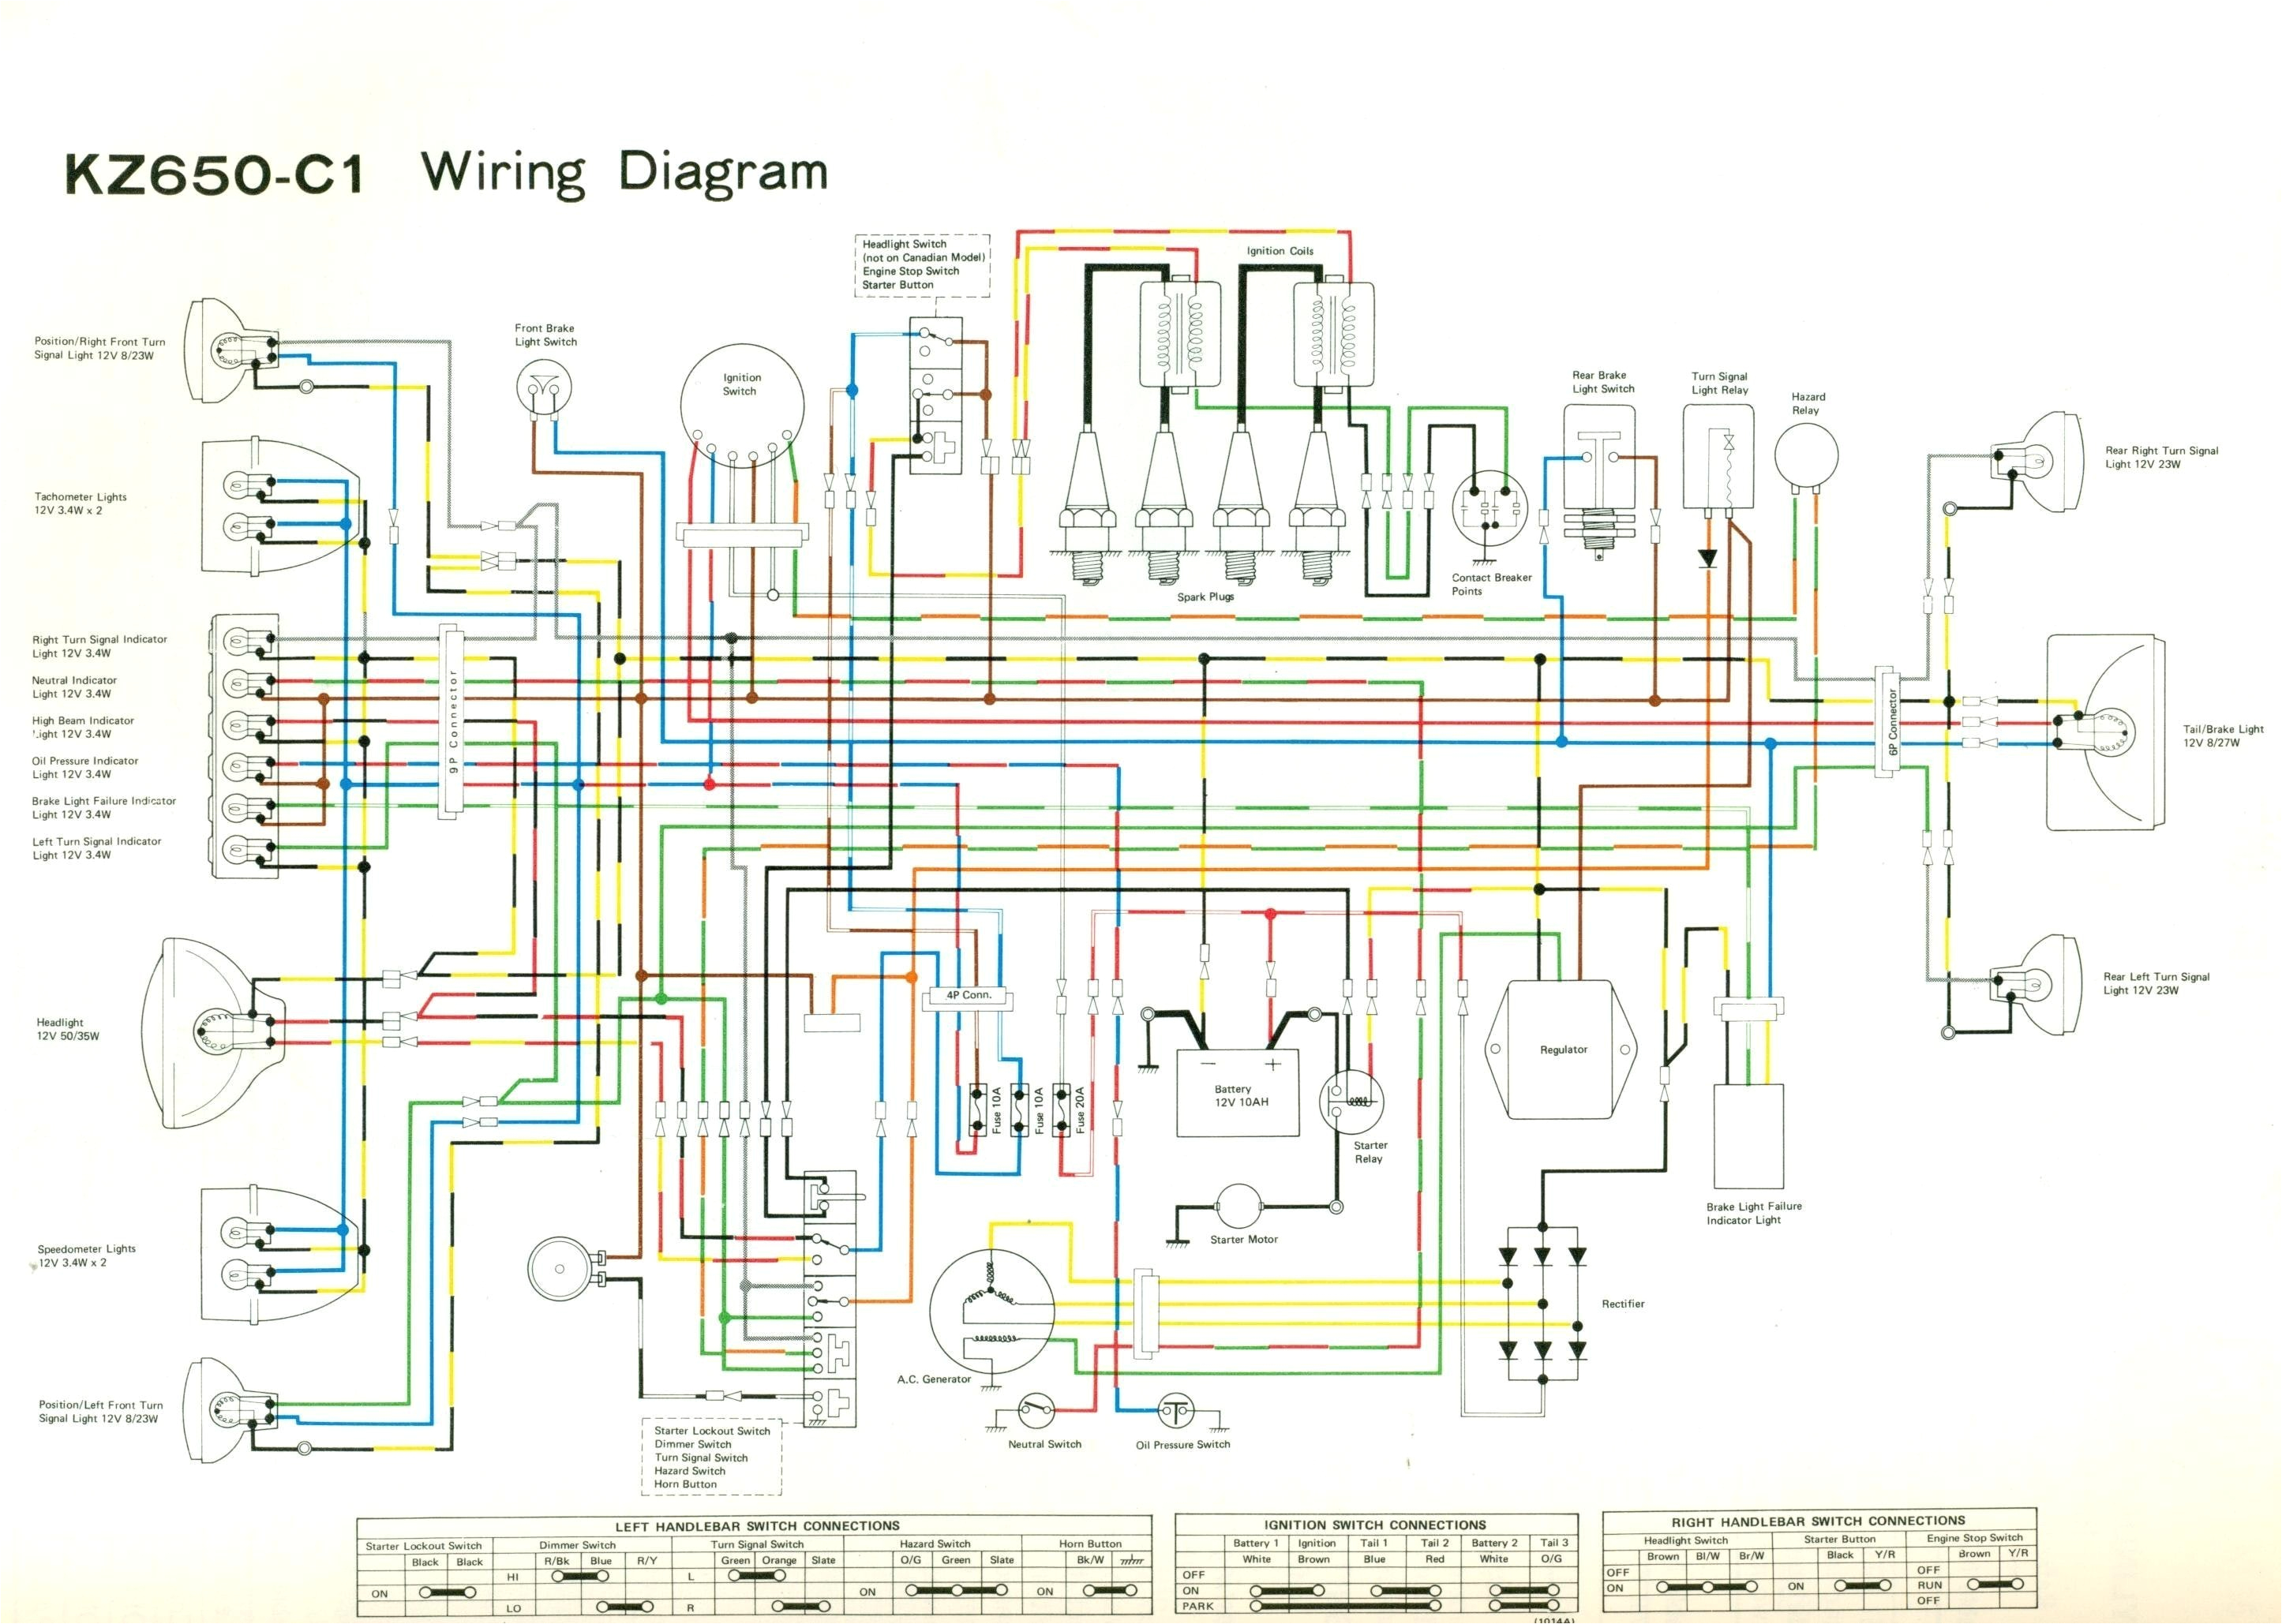 wiring diagram motor kawasaki valid prairie 300 parts kz 650 c for 400 and of within kz650 png